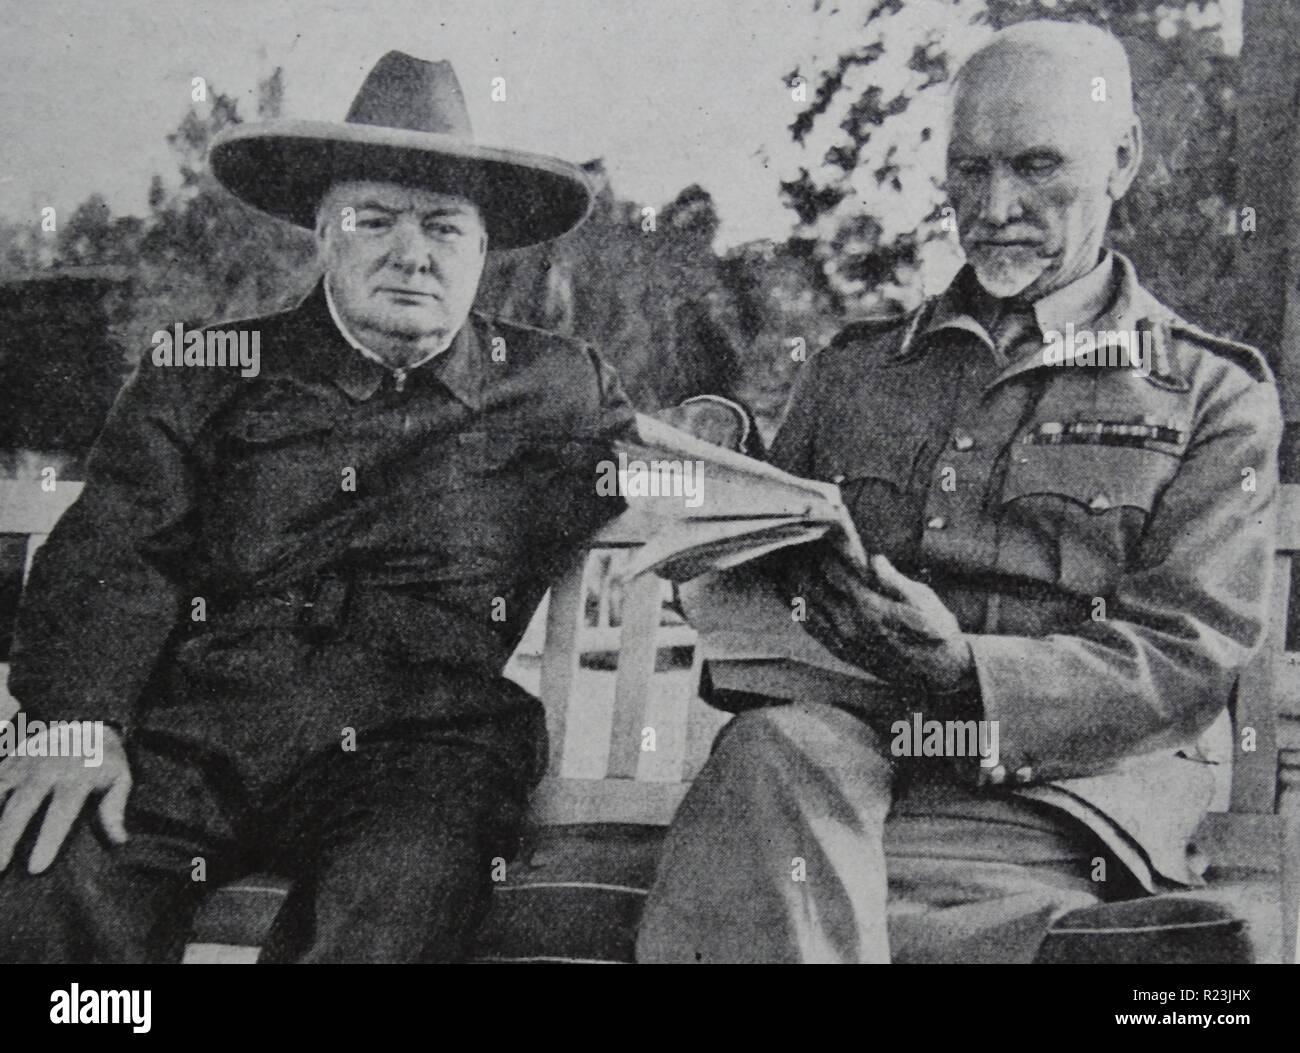 Winston Churchill (1874-1965) Prime Minister of the United Kingdom from 1940-1945 and again 1951-1955 with Jan Christiaan Smuts, South African and British Commonwealth statesman, military leader and philosopher in Cairo. - Stock Image